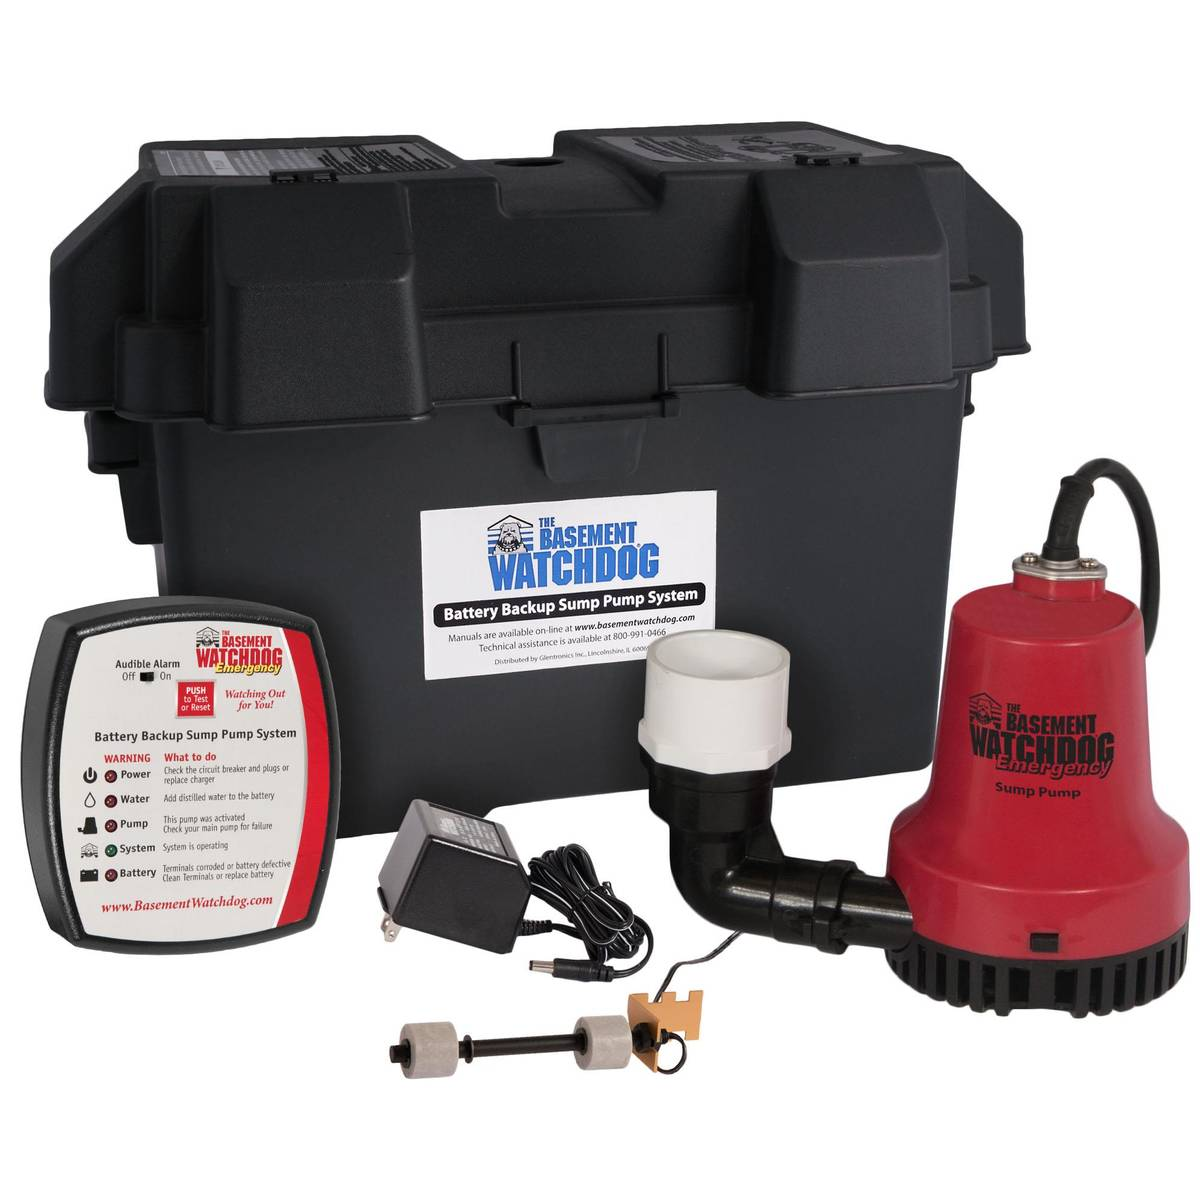 Best sump pump backup system - Share This